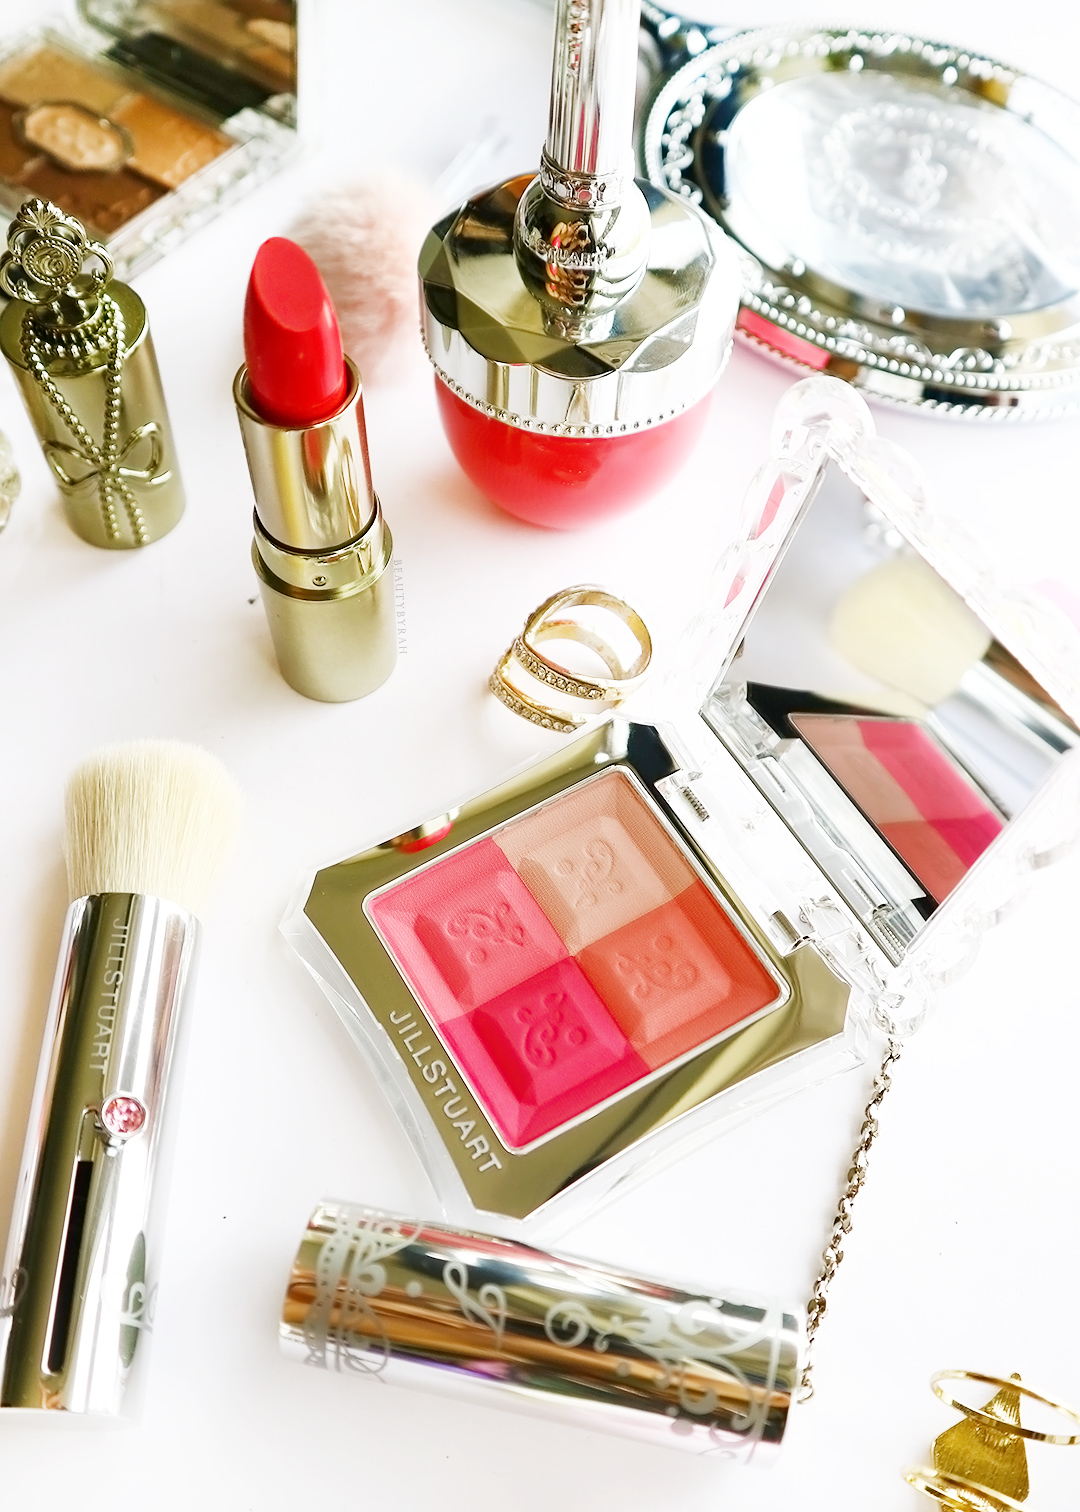 Jill Stuart Beauty Mix Blush Compact Singapore Review